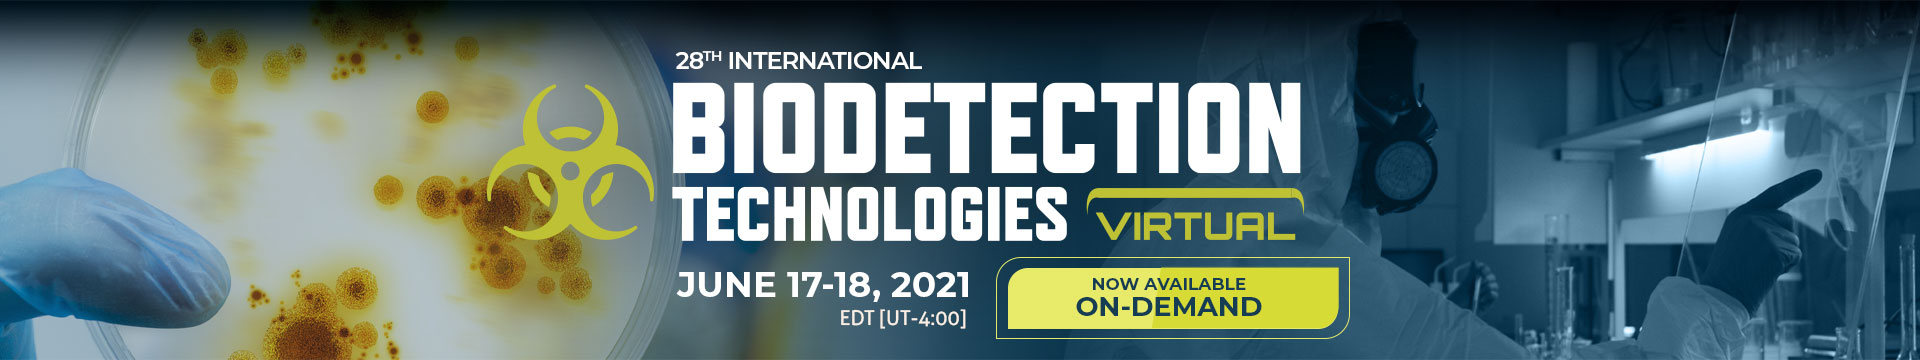 International Biodetection Technologies Banner Image